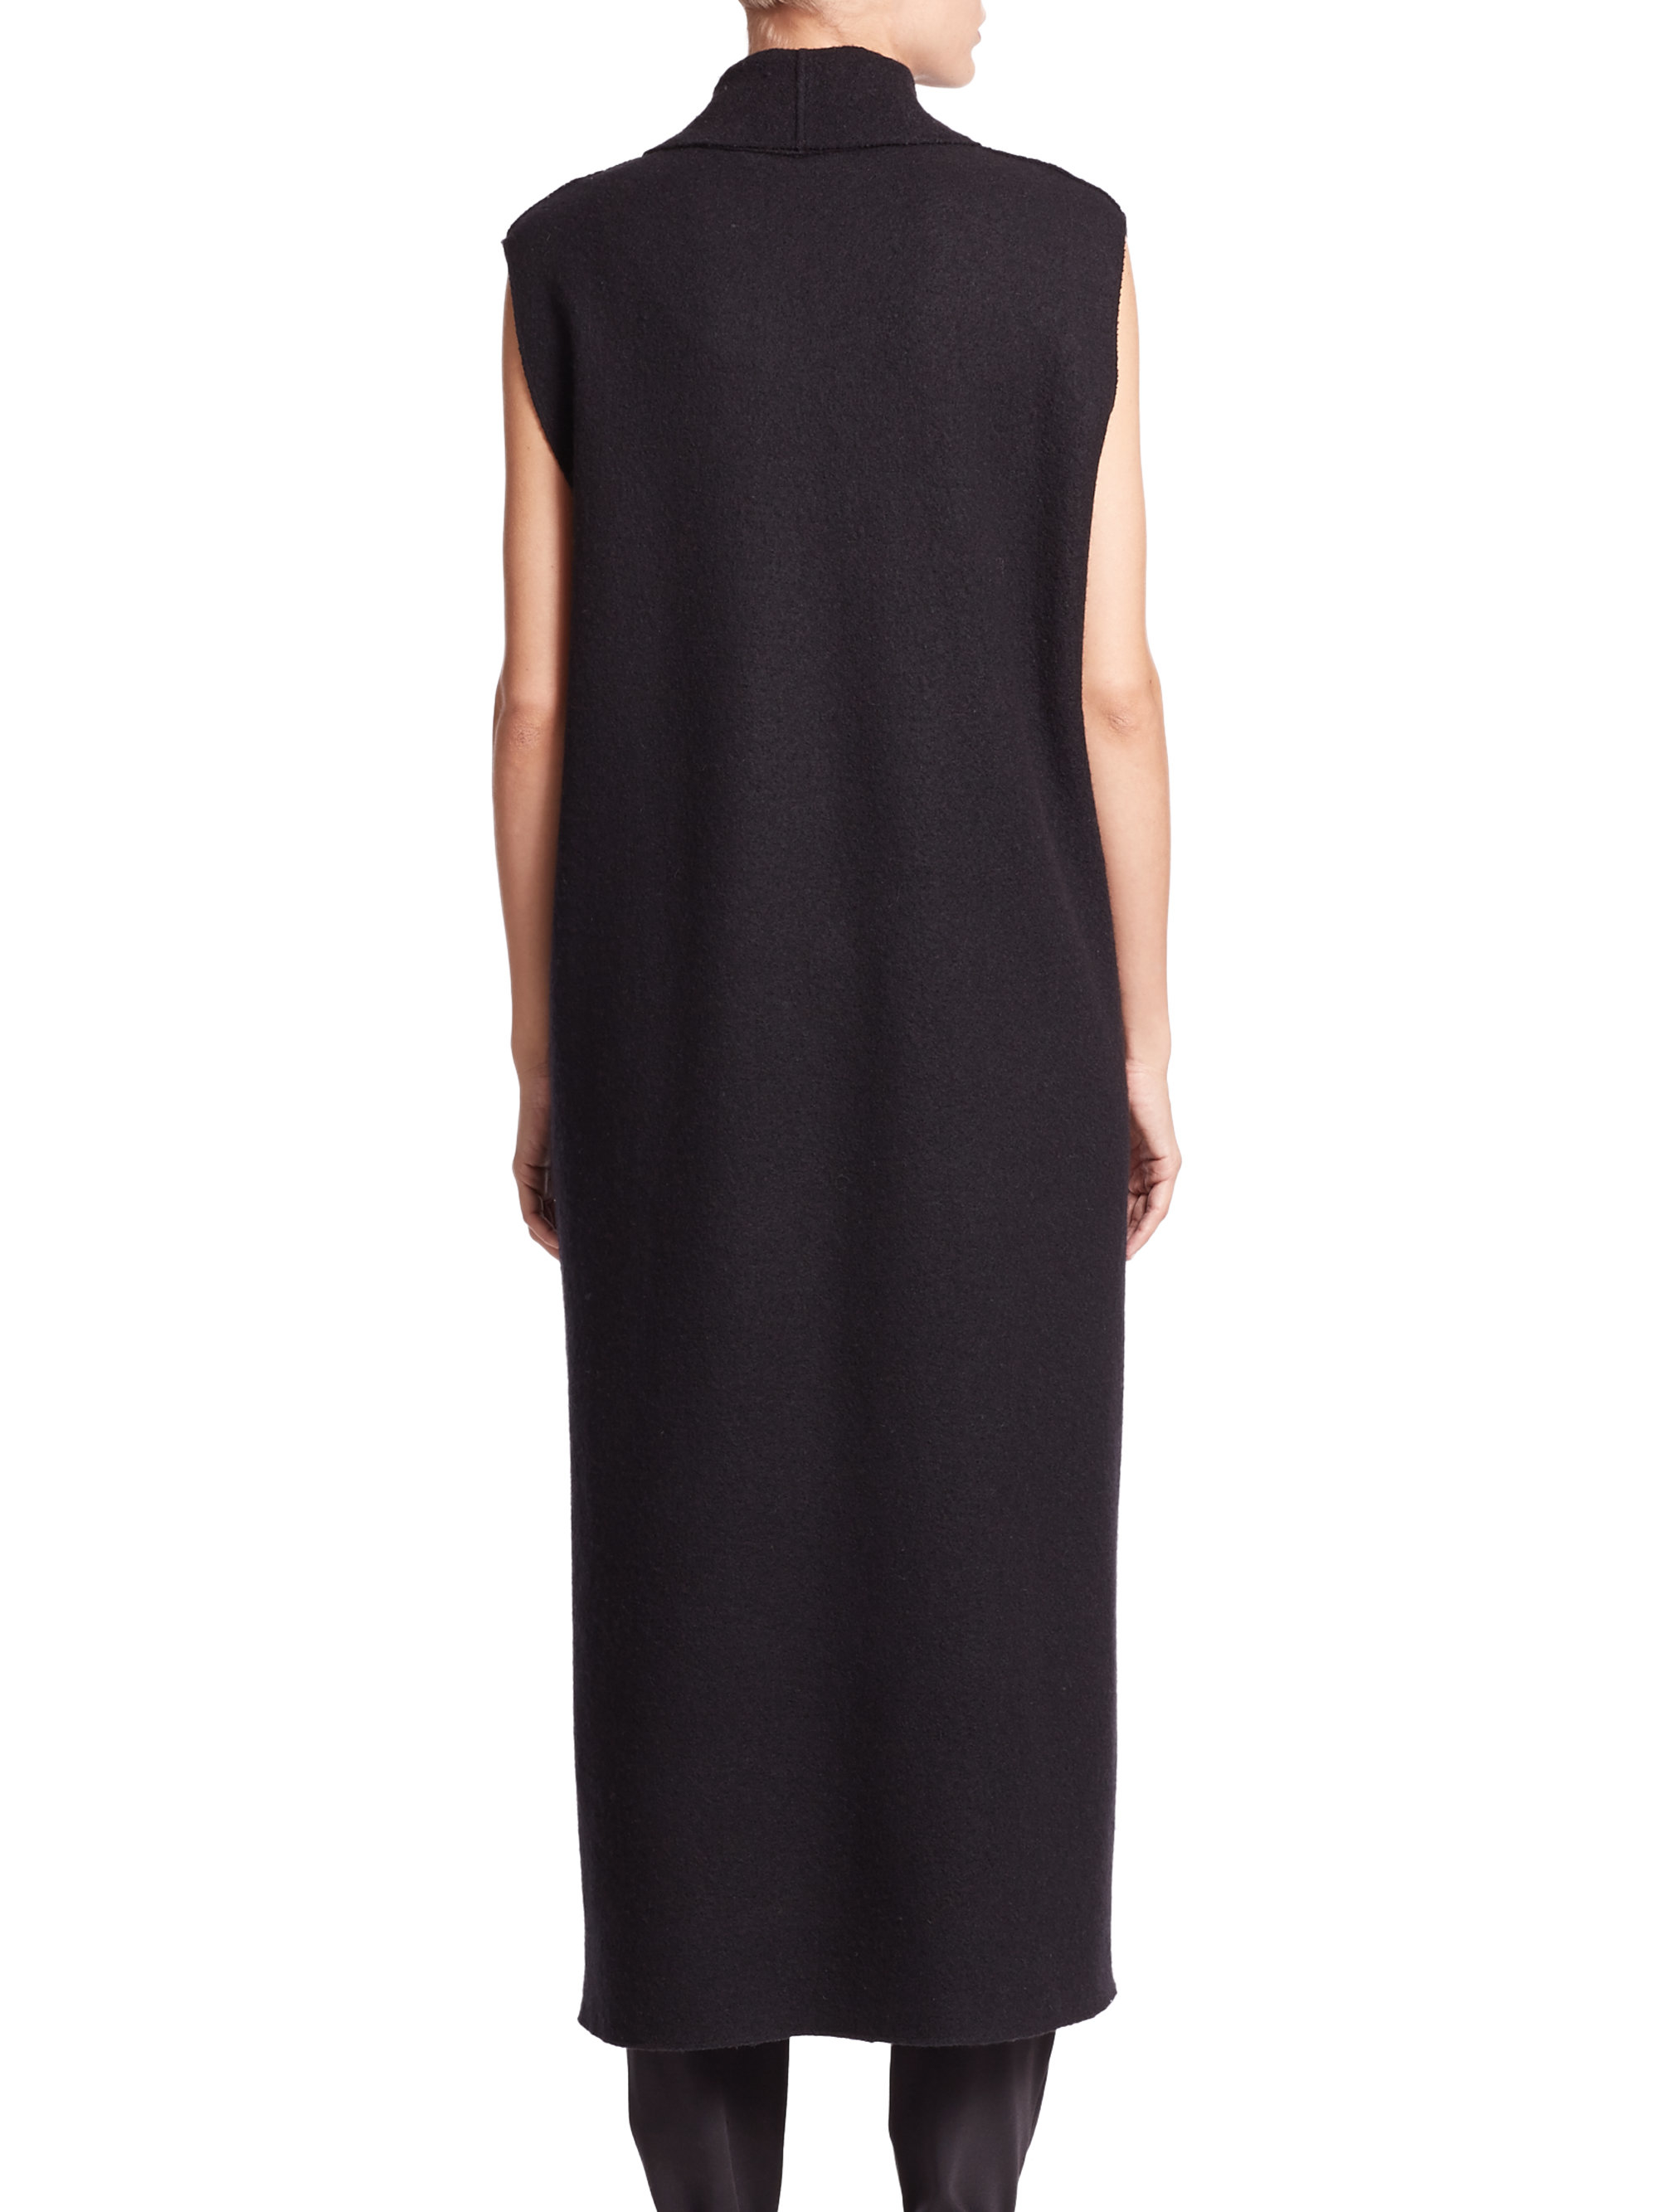 Eileen Fisher Dresses